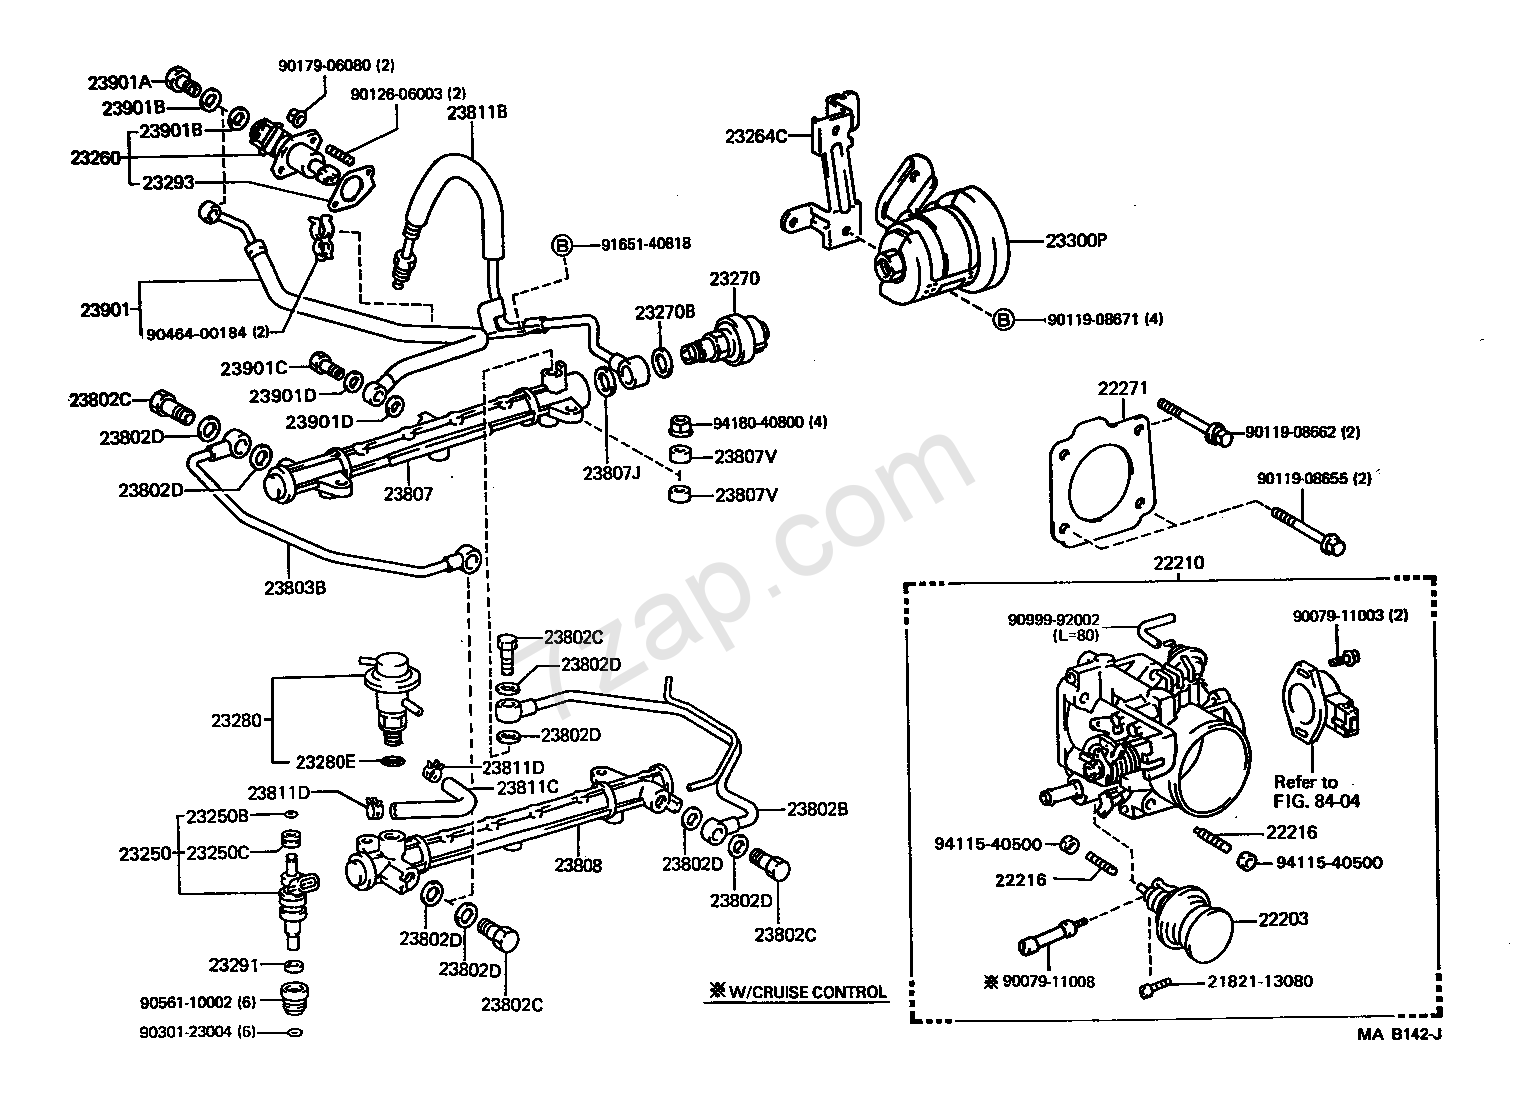 Fuel Injection System Illust No 1 Of 2 3vze